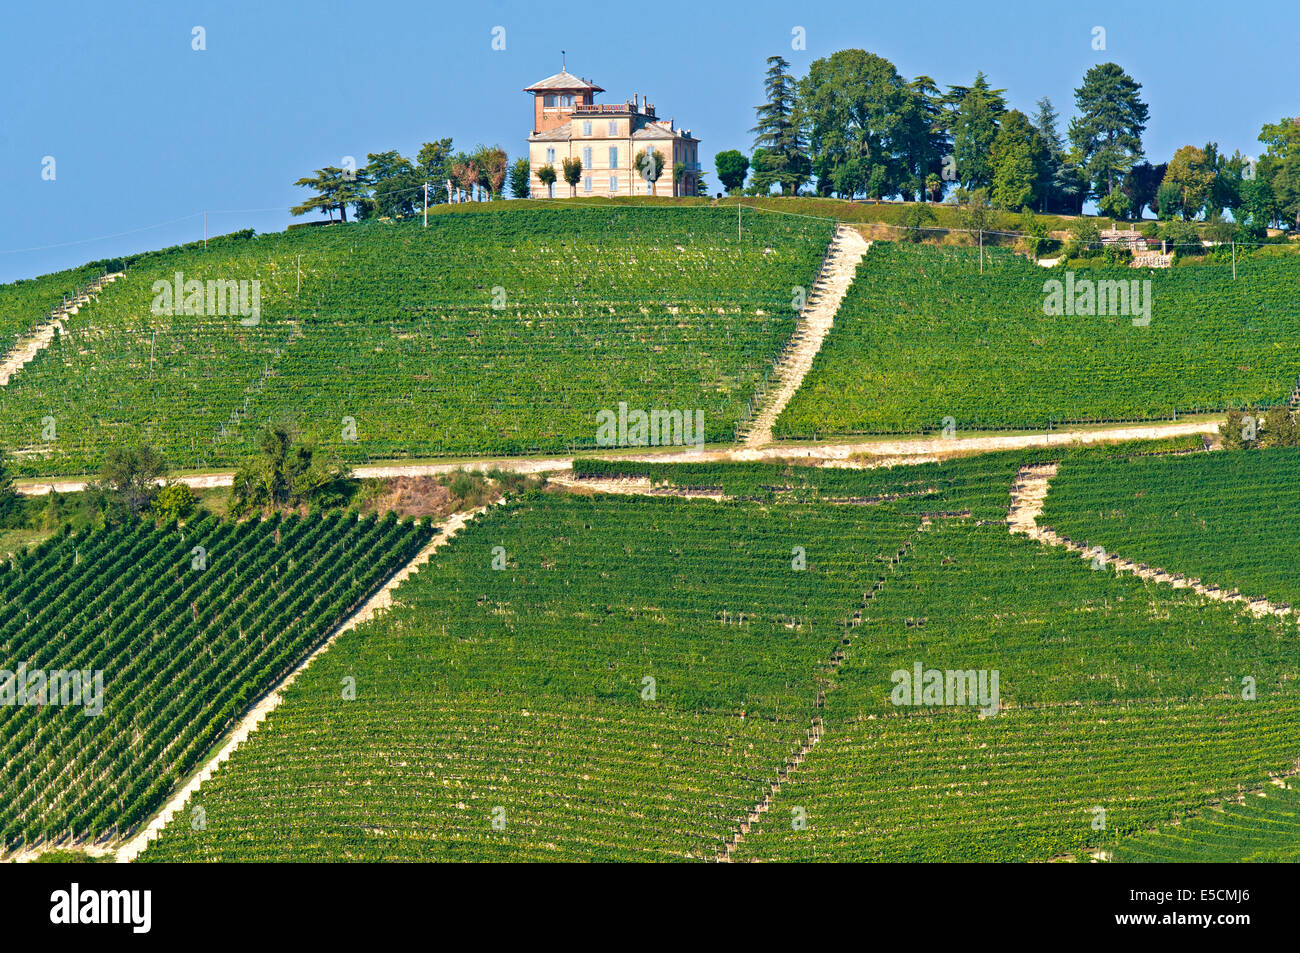 Vineyard for Nebbiolo grapes in Alba, Piedmont, Italy - Stock Image